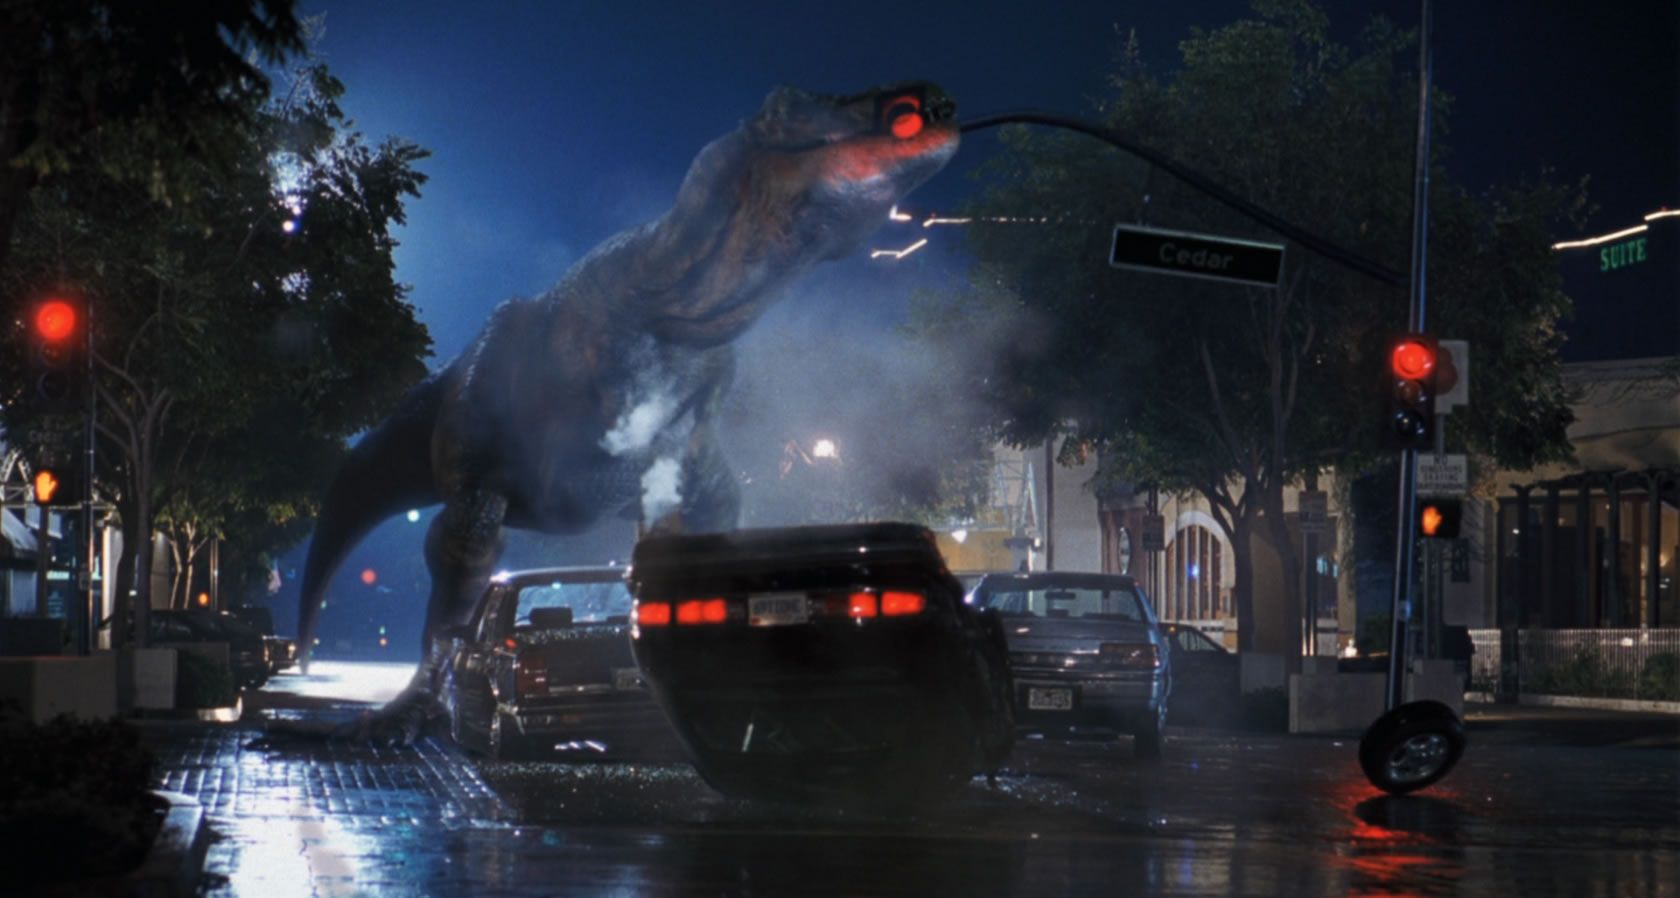 Jurassic Park 2 Revisited Hang On This Is Going To Be Bad